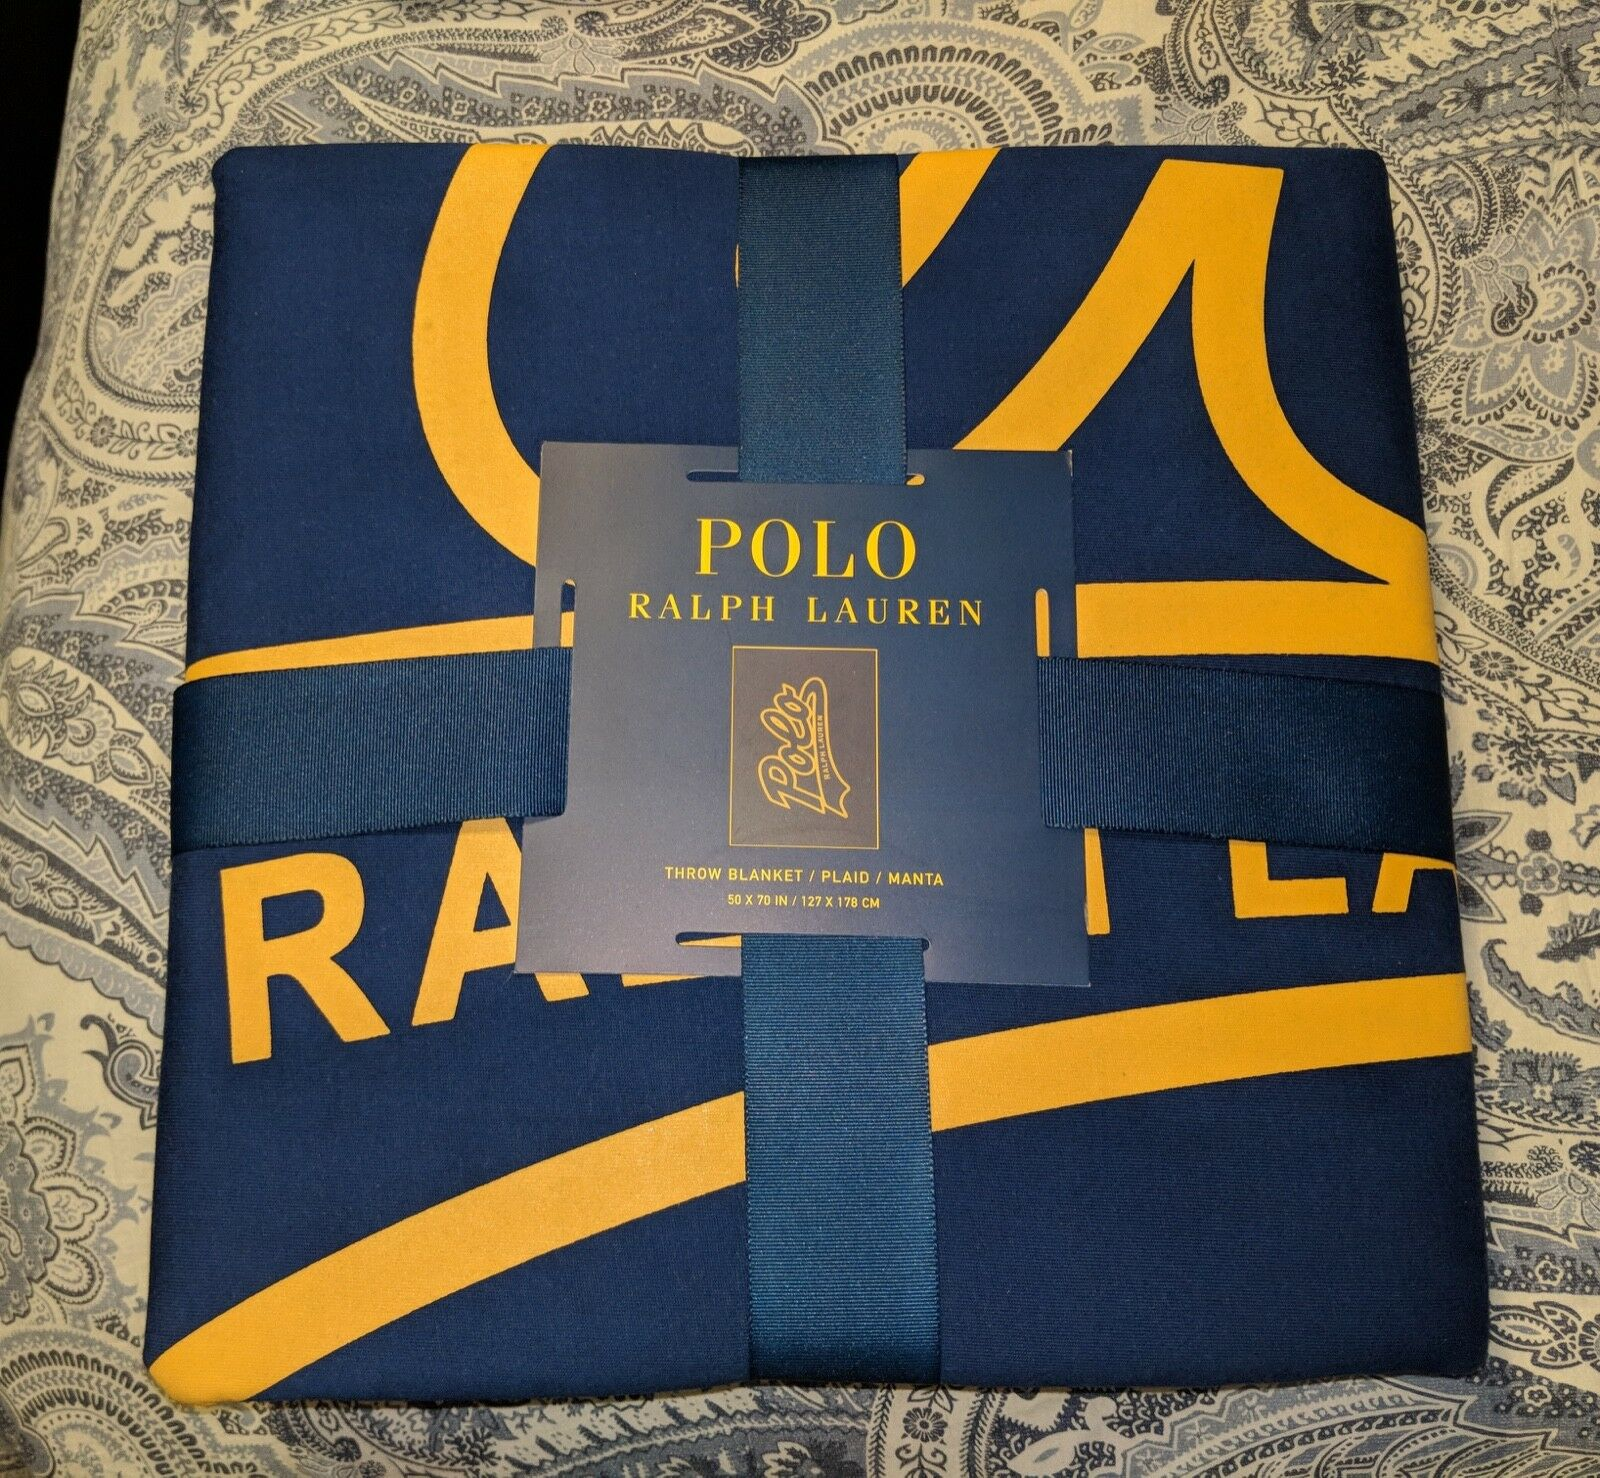 Polo Ralph Lauren Throw Blanket, NAVY 50  x 70  LIMITED EDITION